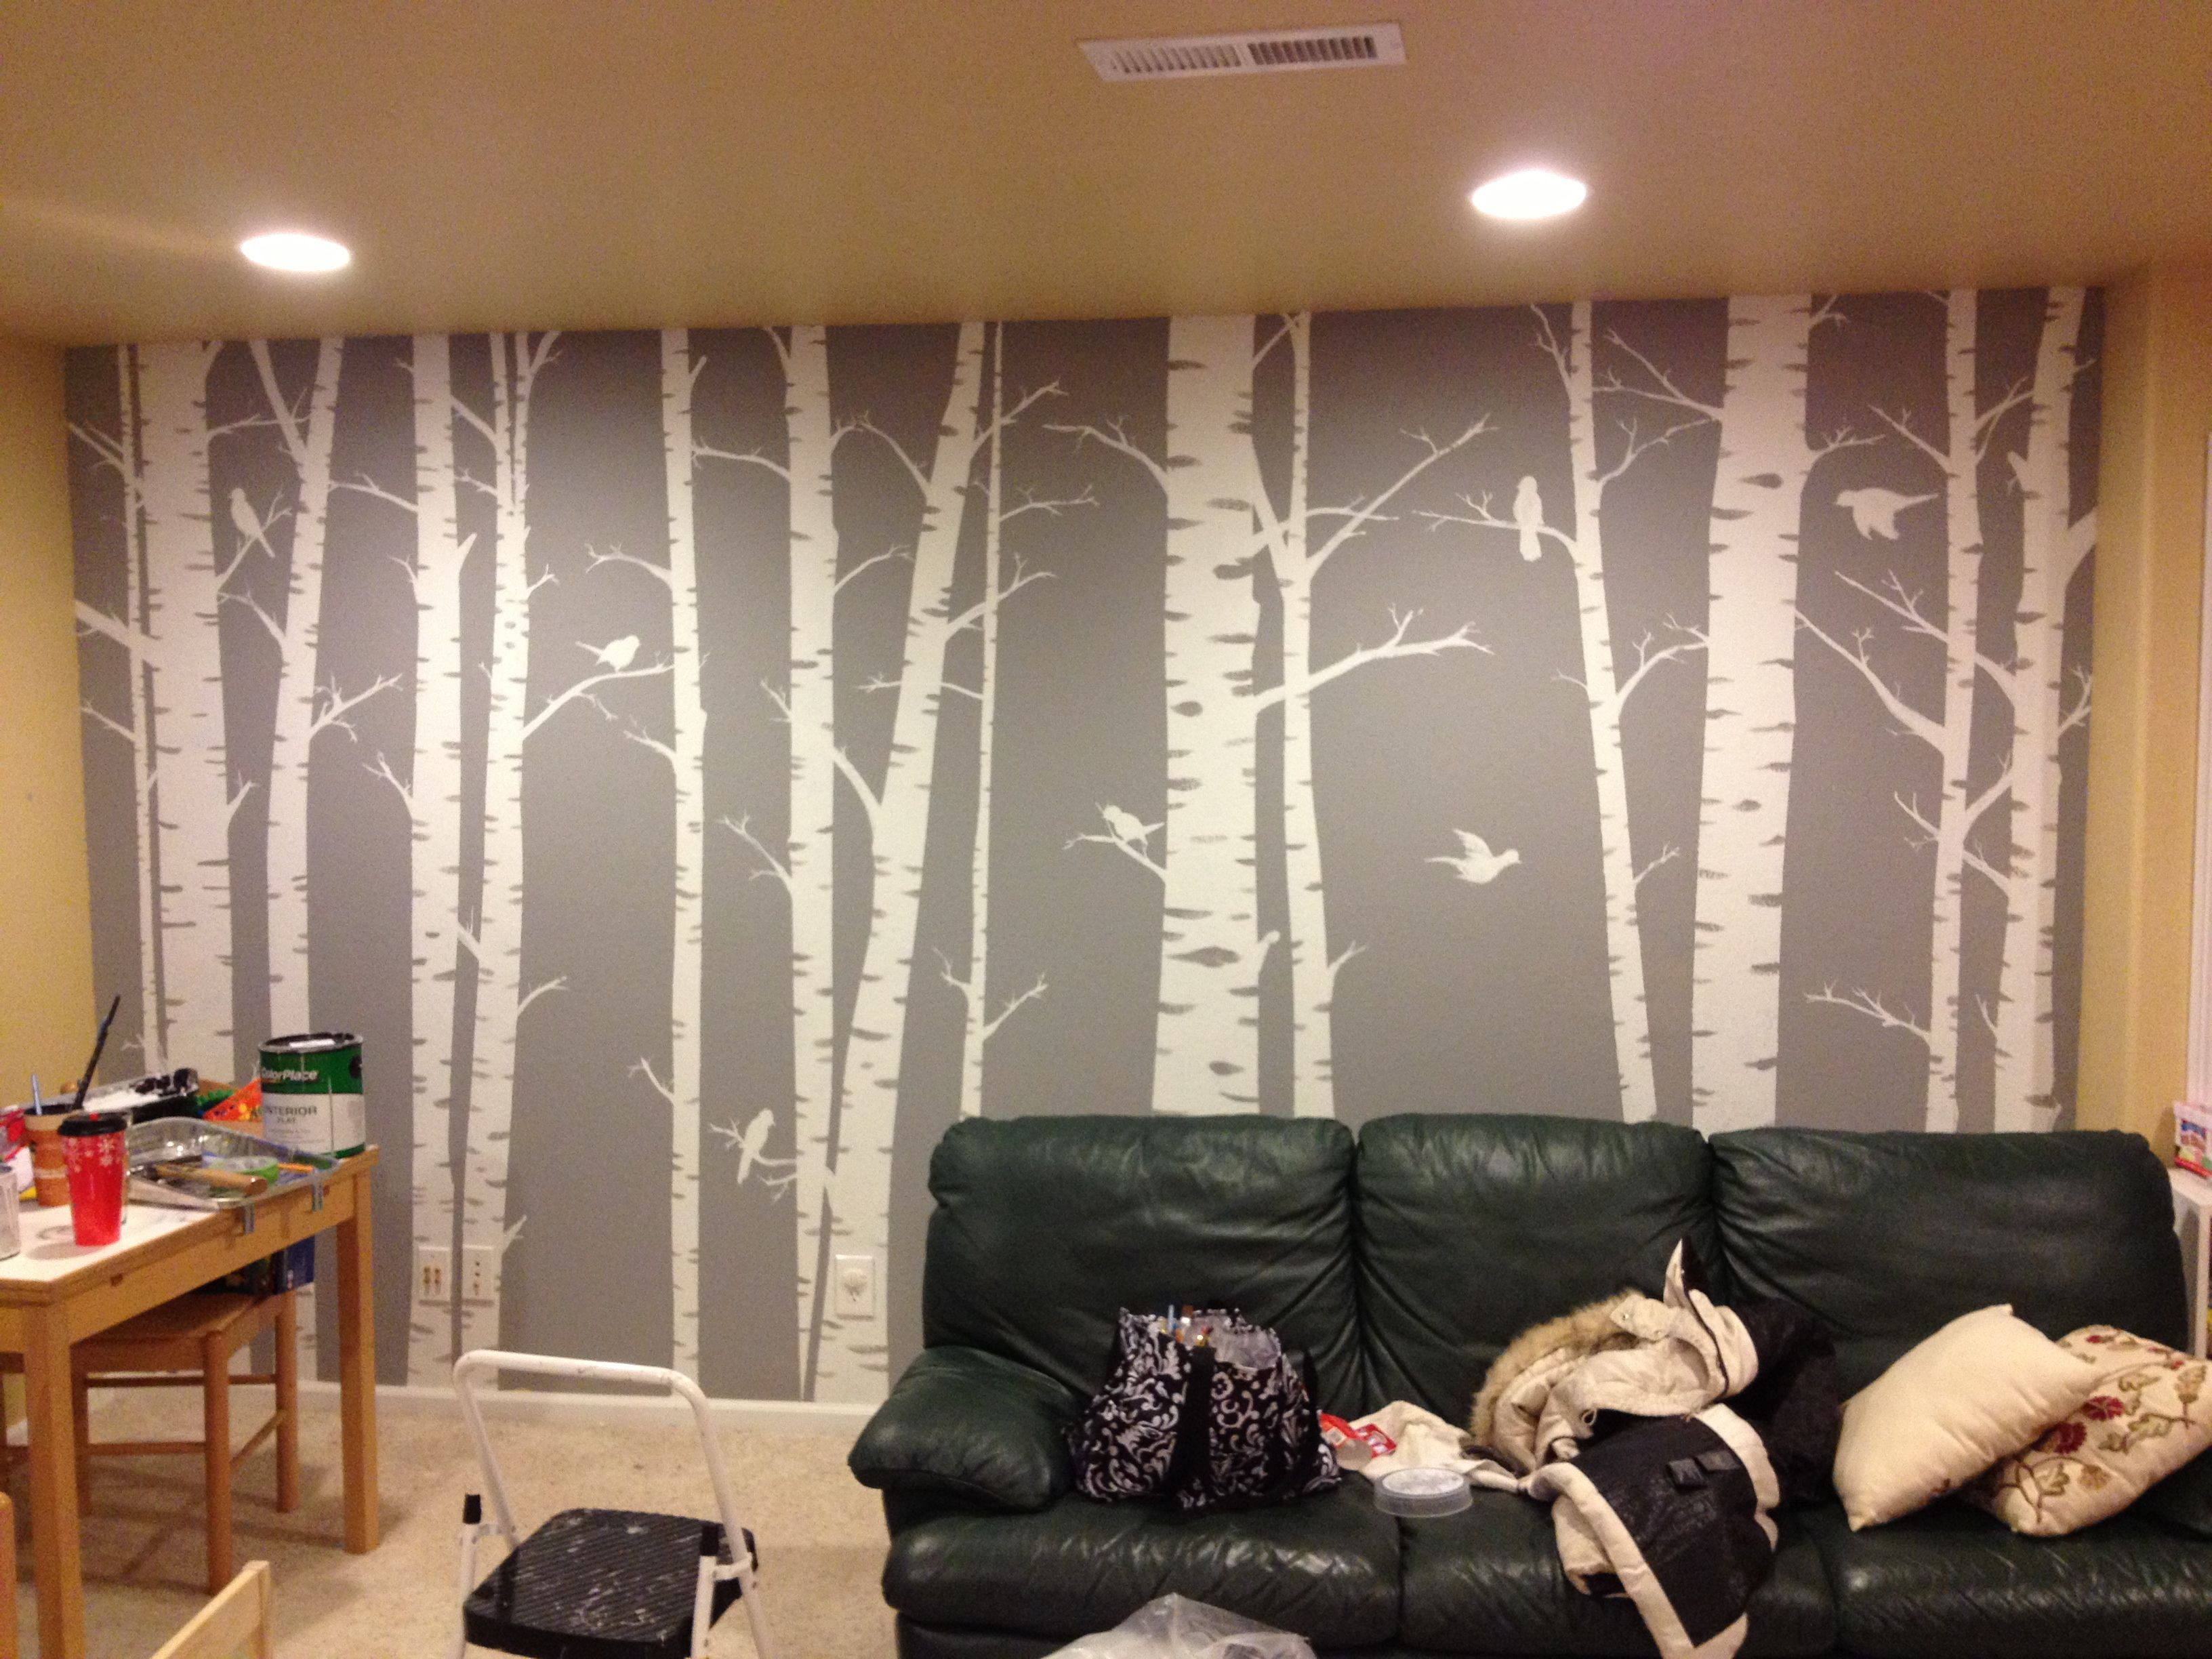 birch tree mural artist me neverland artistry by mandy helwege birch tree mural artist me